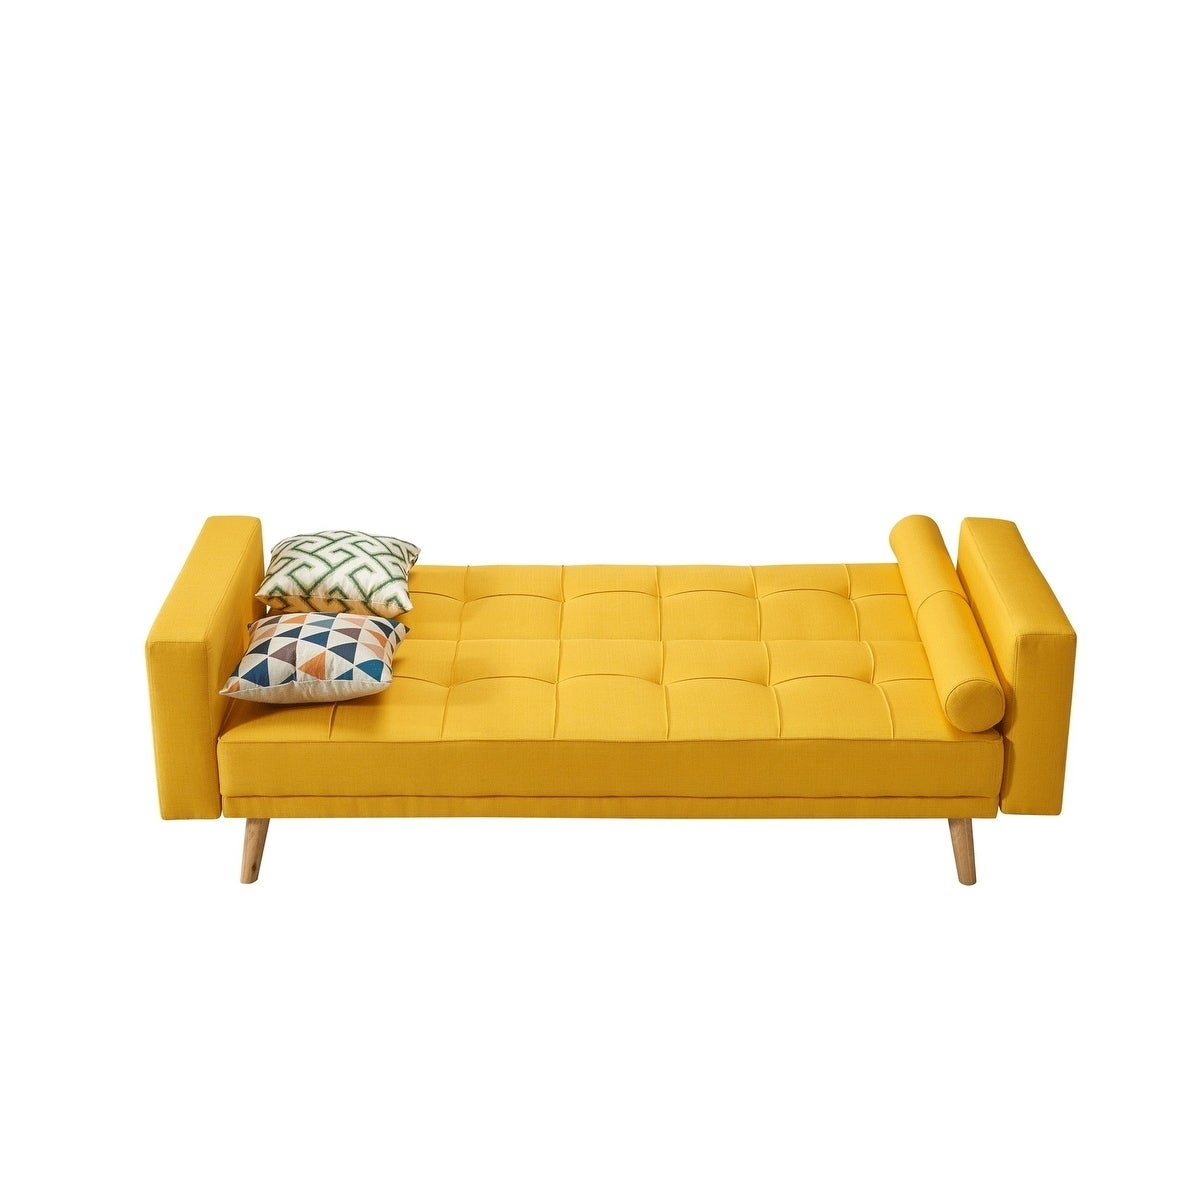 Luca Home Alex Yellow Microfiber And Wood Tufted Scandinavian Style Sofa Bed